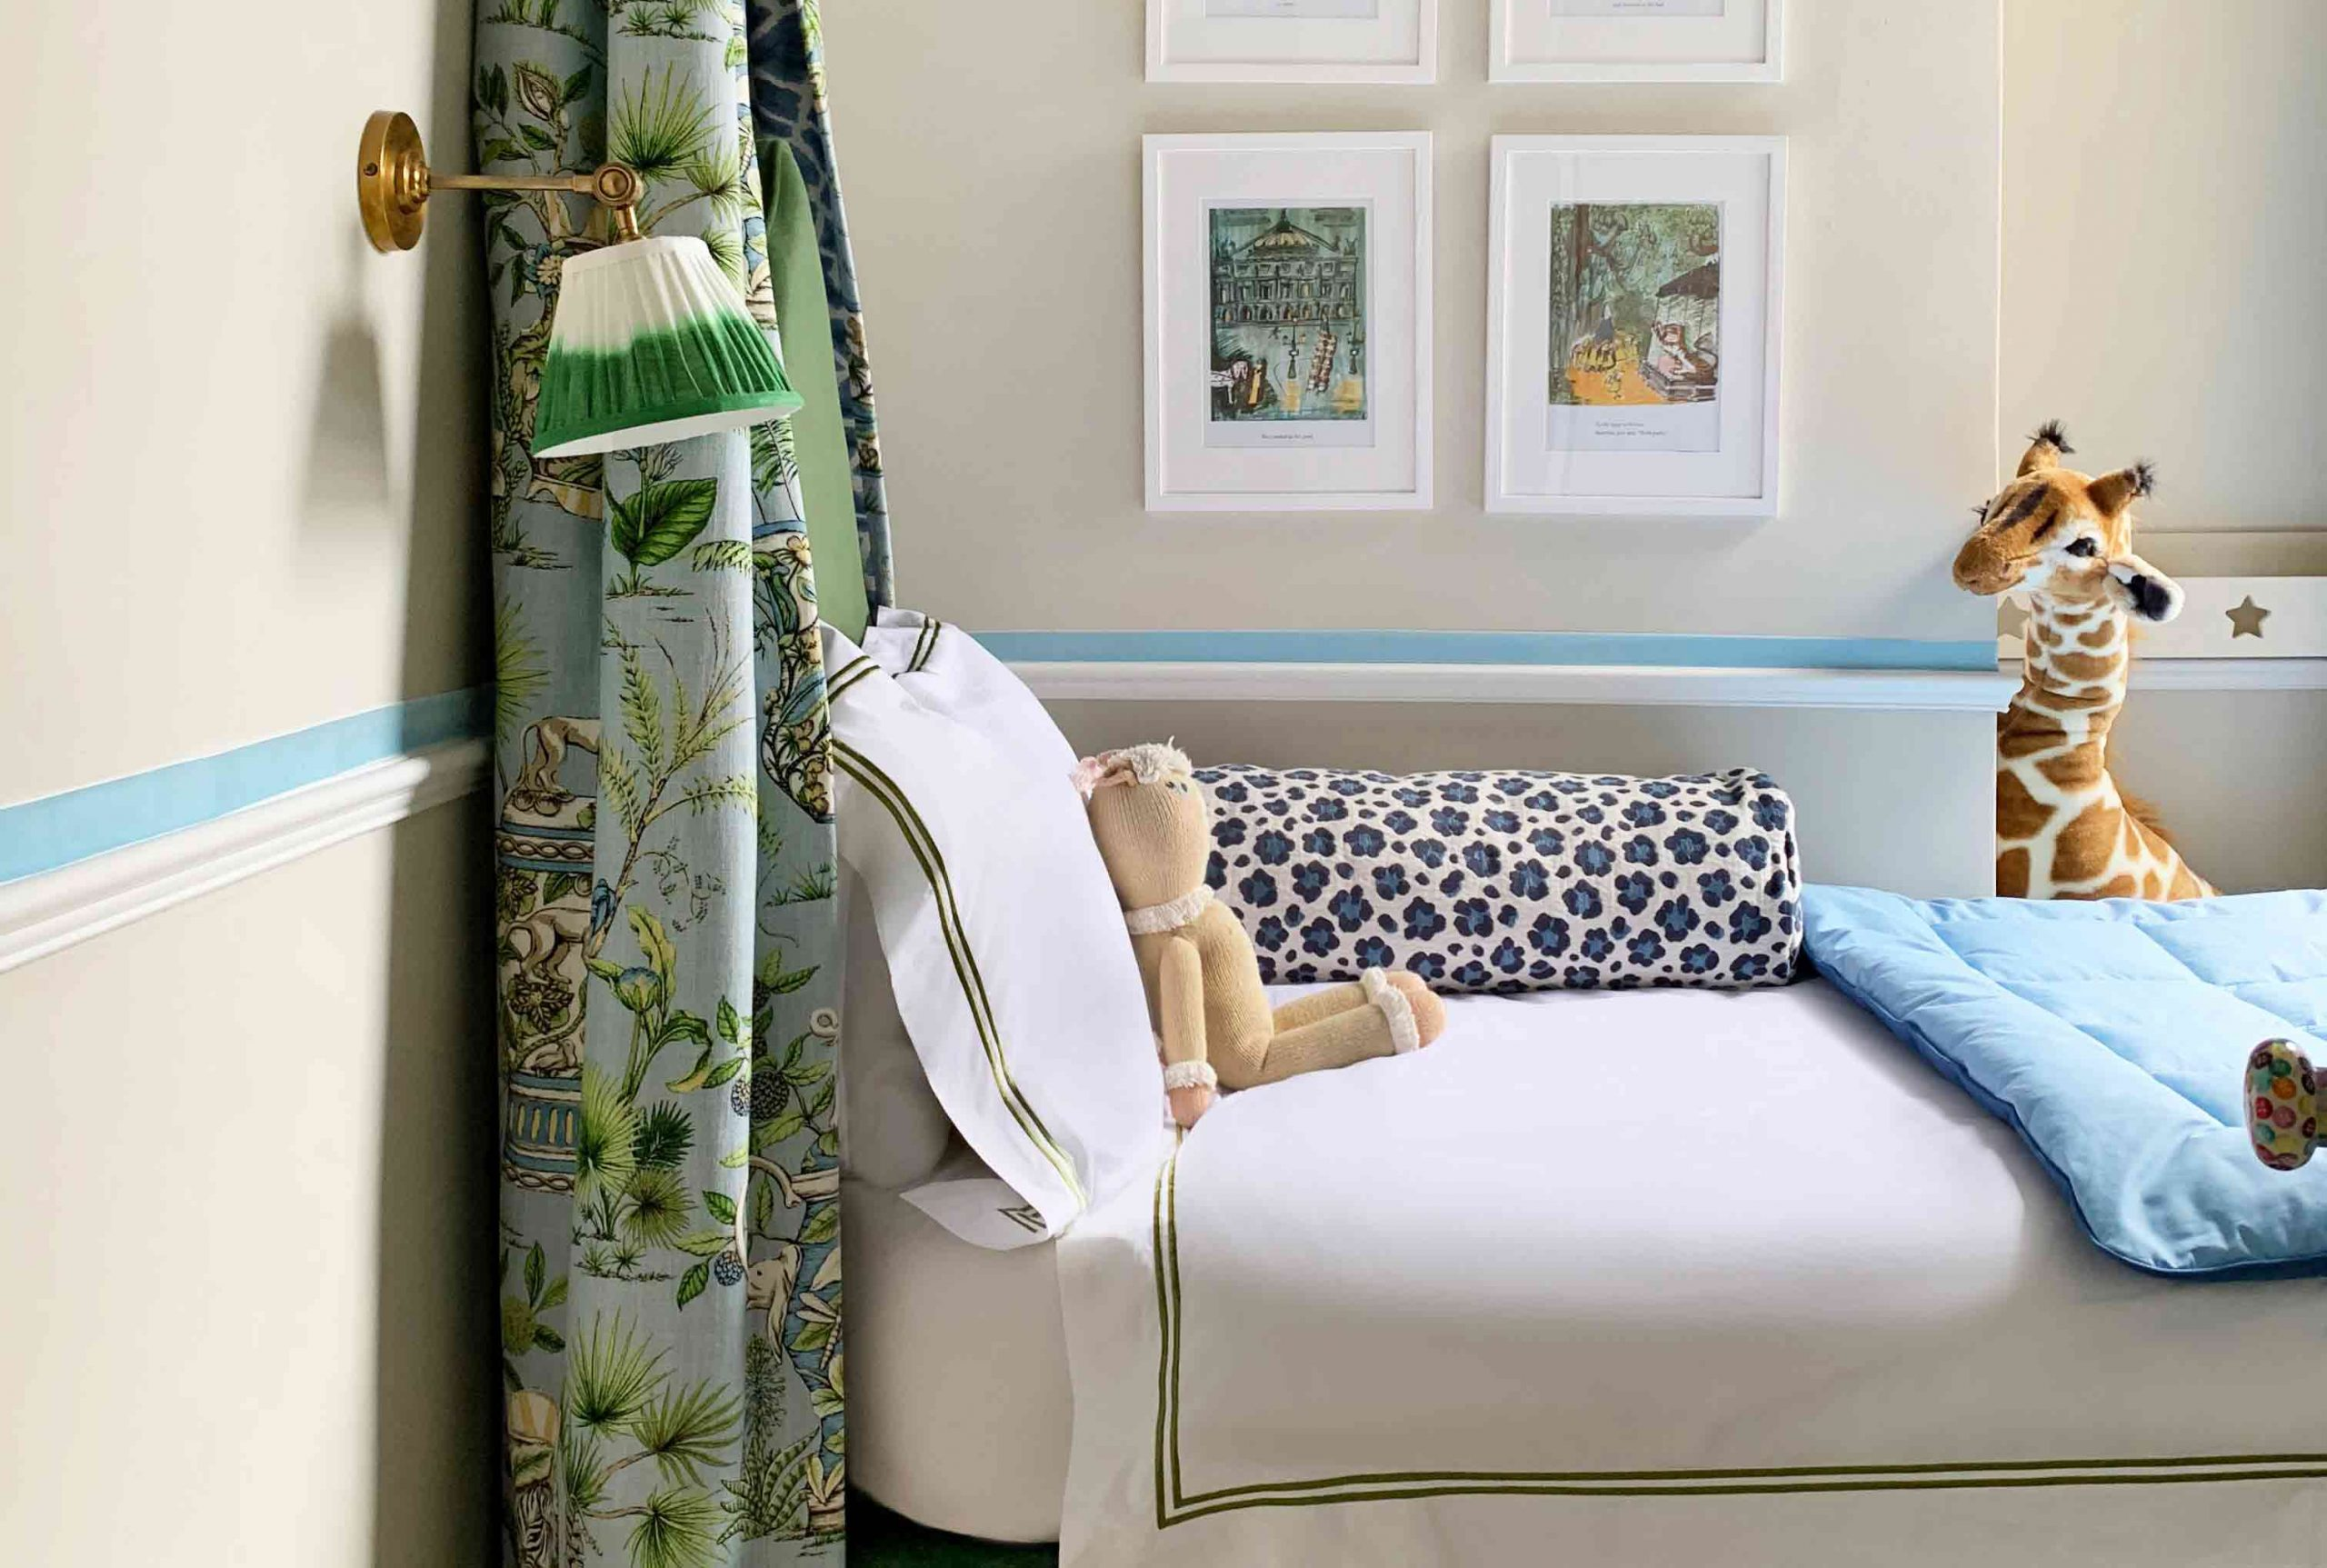 Claire Brayford's Advice on Decorating Your Children's Bedroom